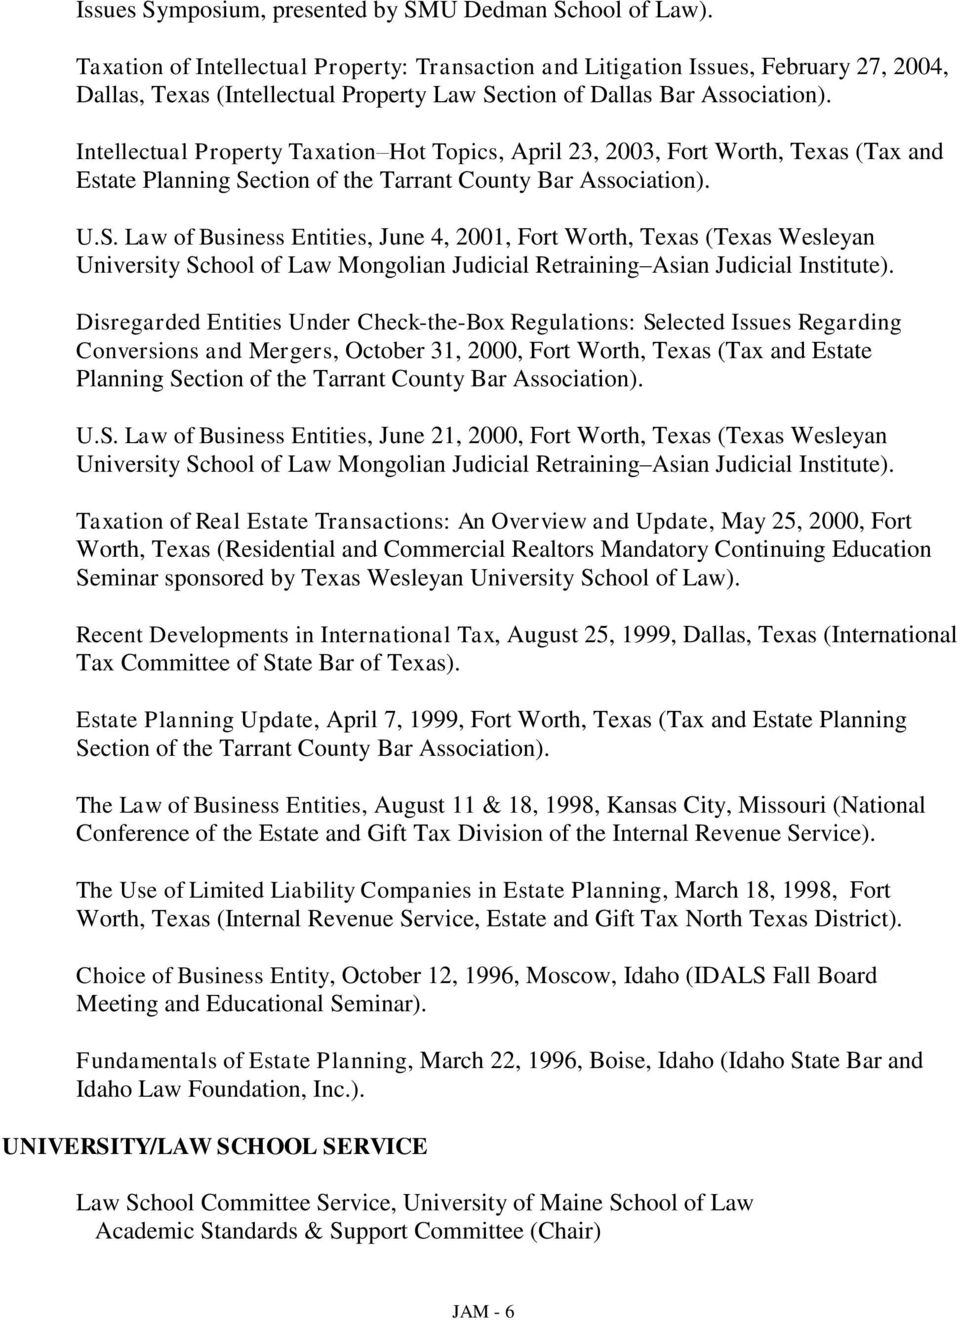 Intellectual Property Taxation Hot Topics, April 23, 2003, Fort Worth, Texas (Tax and Estate Planning Se